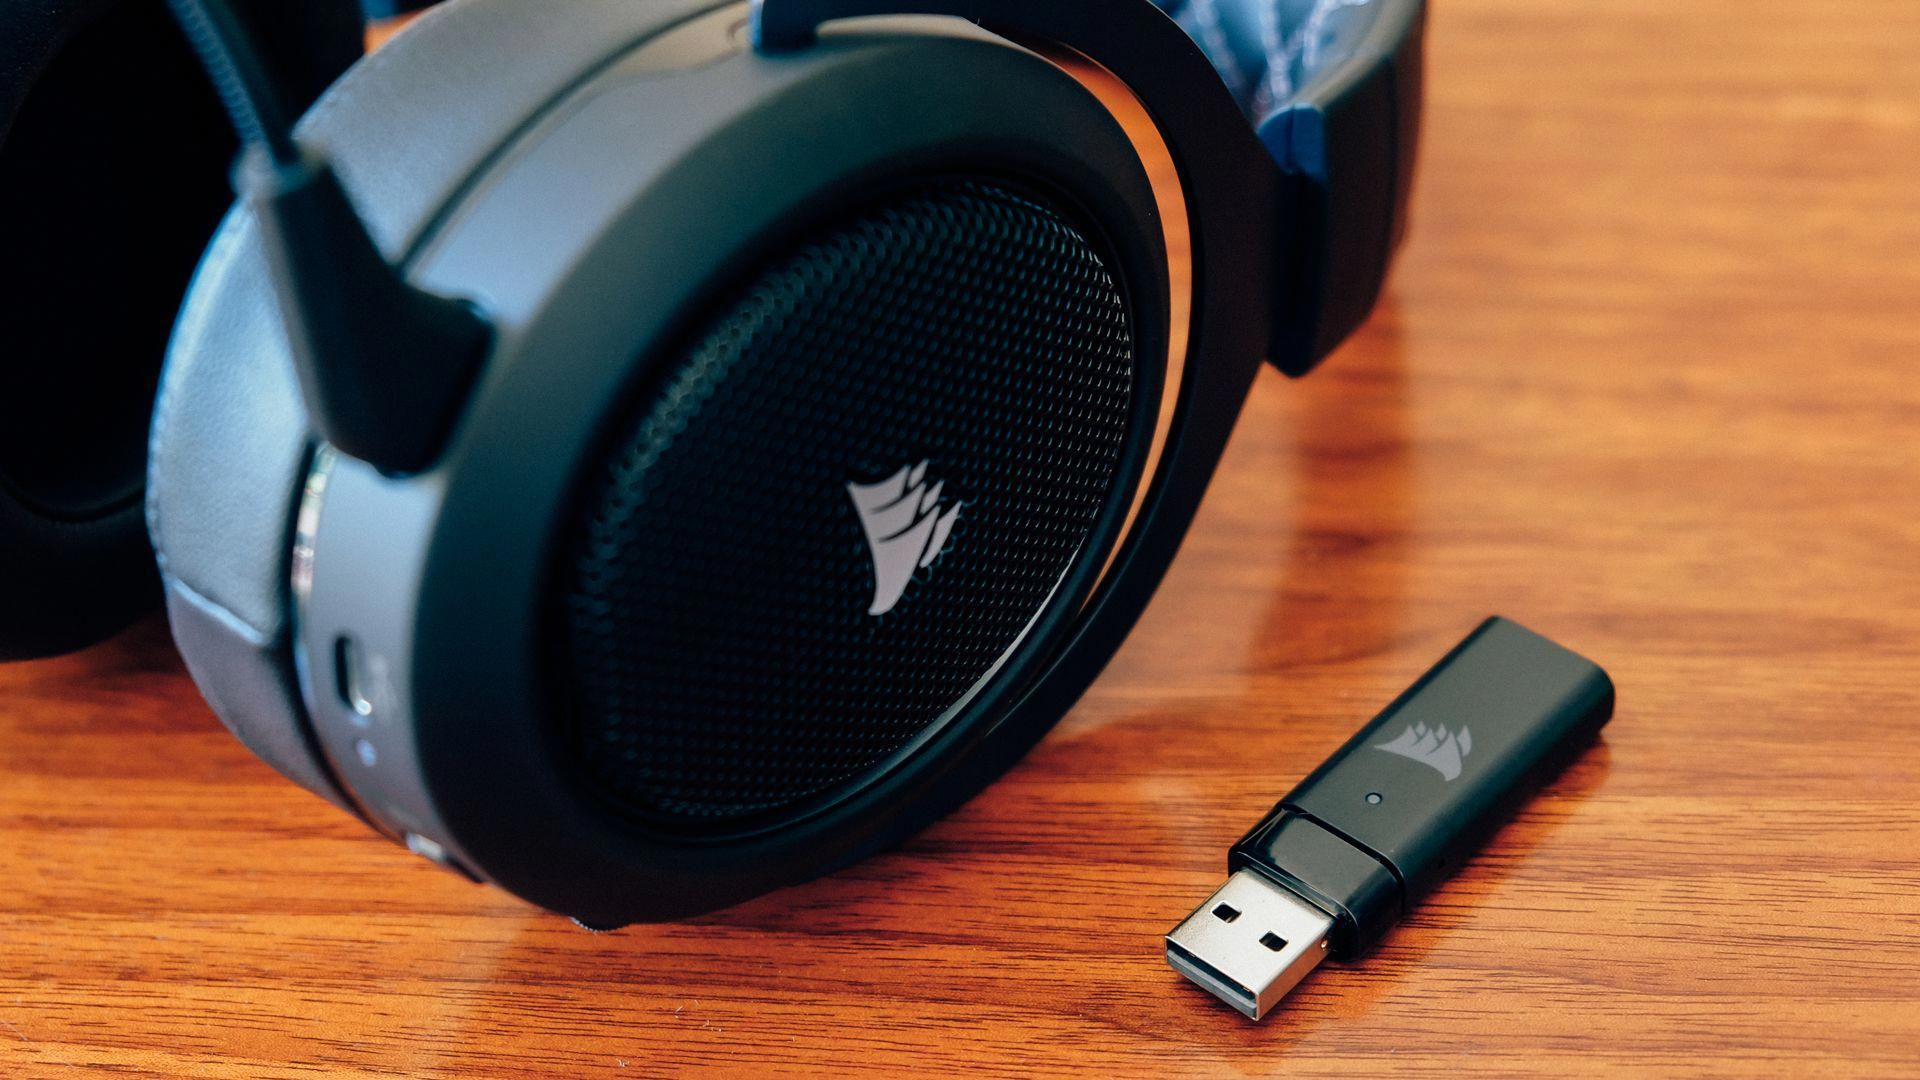 Corsair hs70 wireless gaming headset gamingheadsets